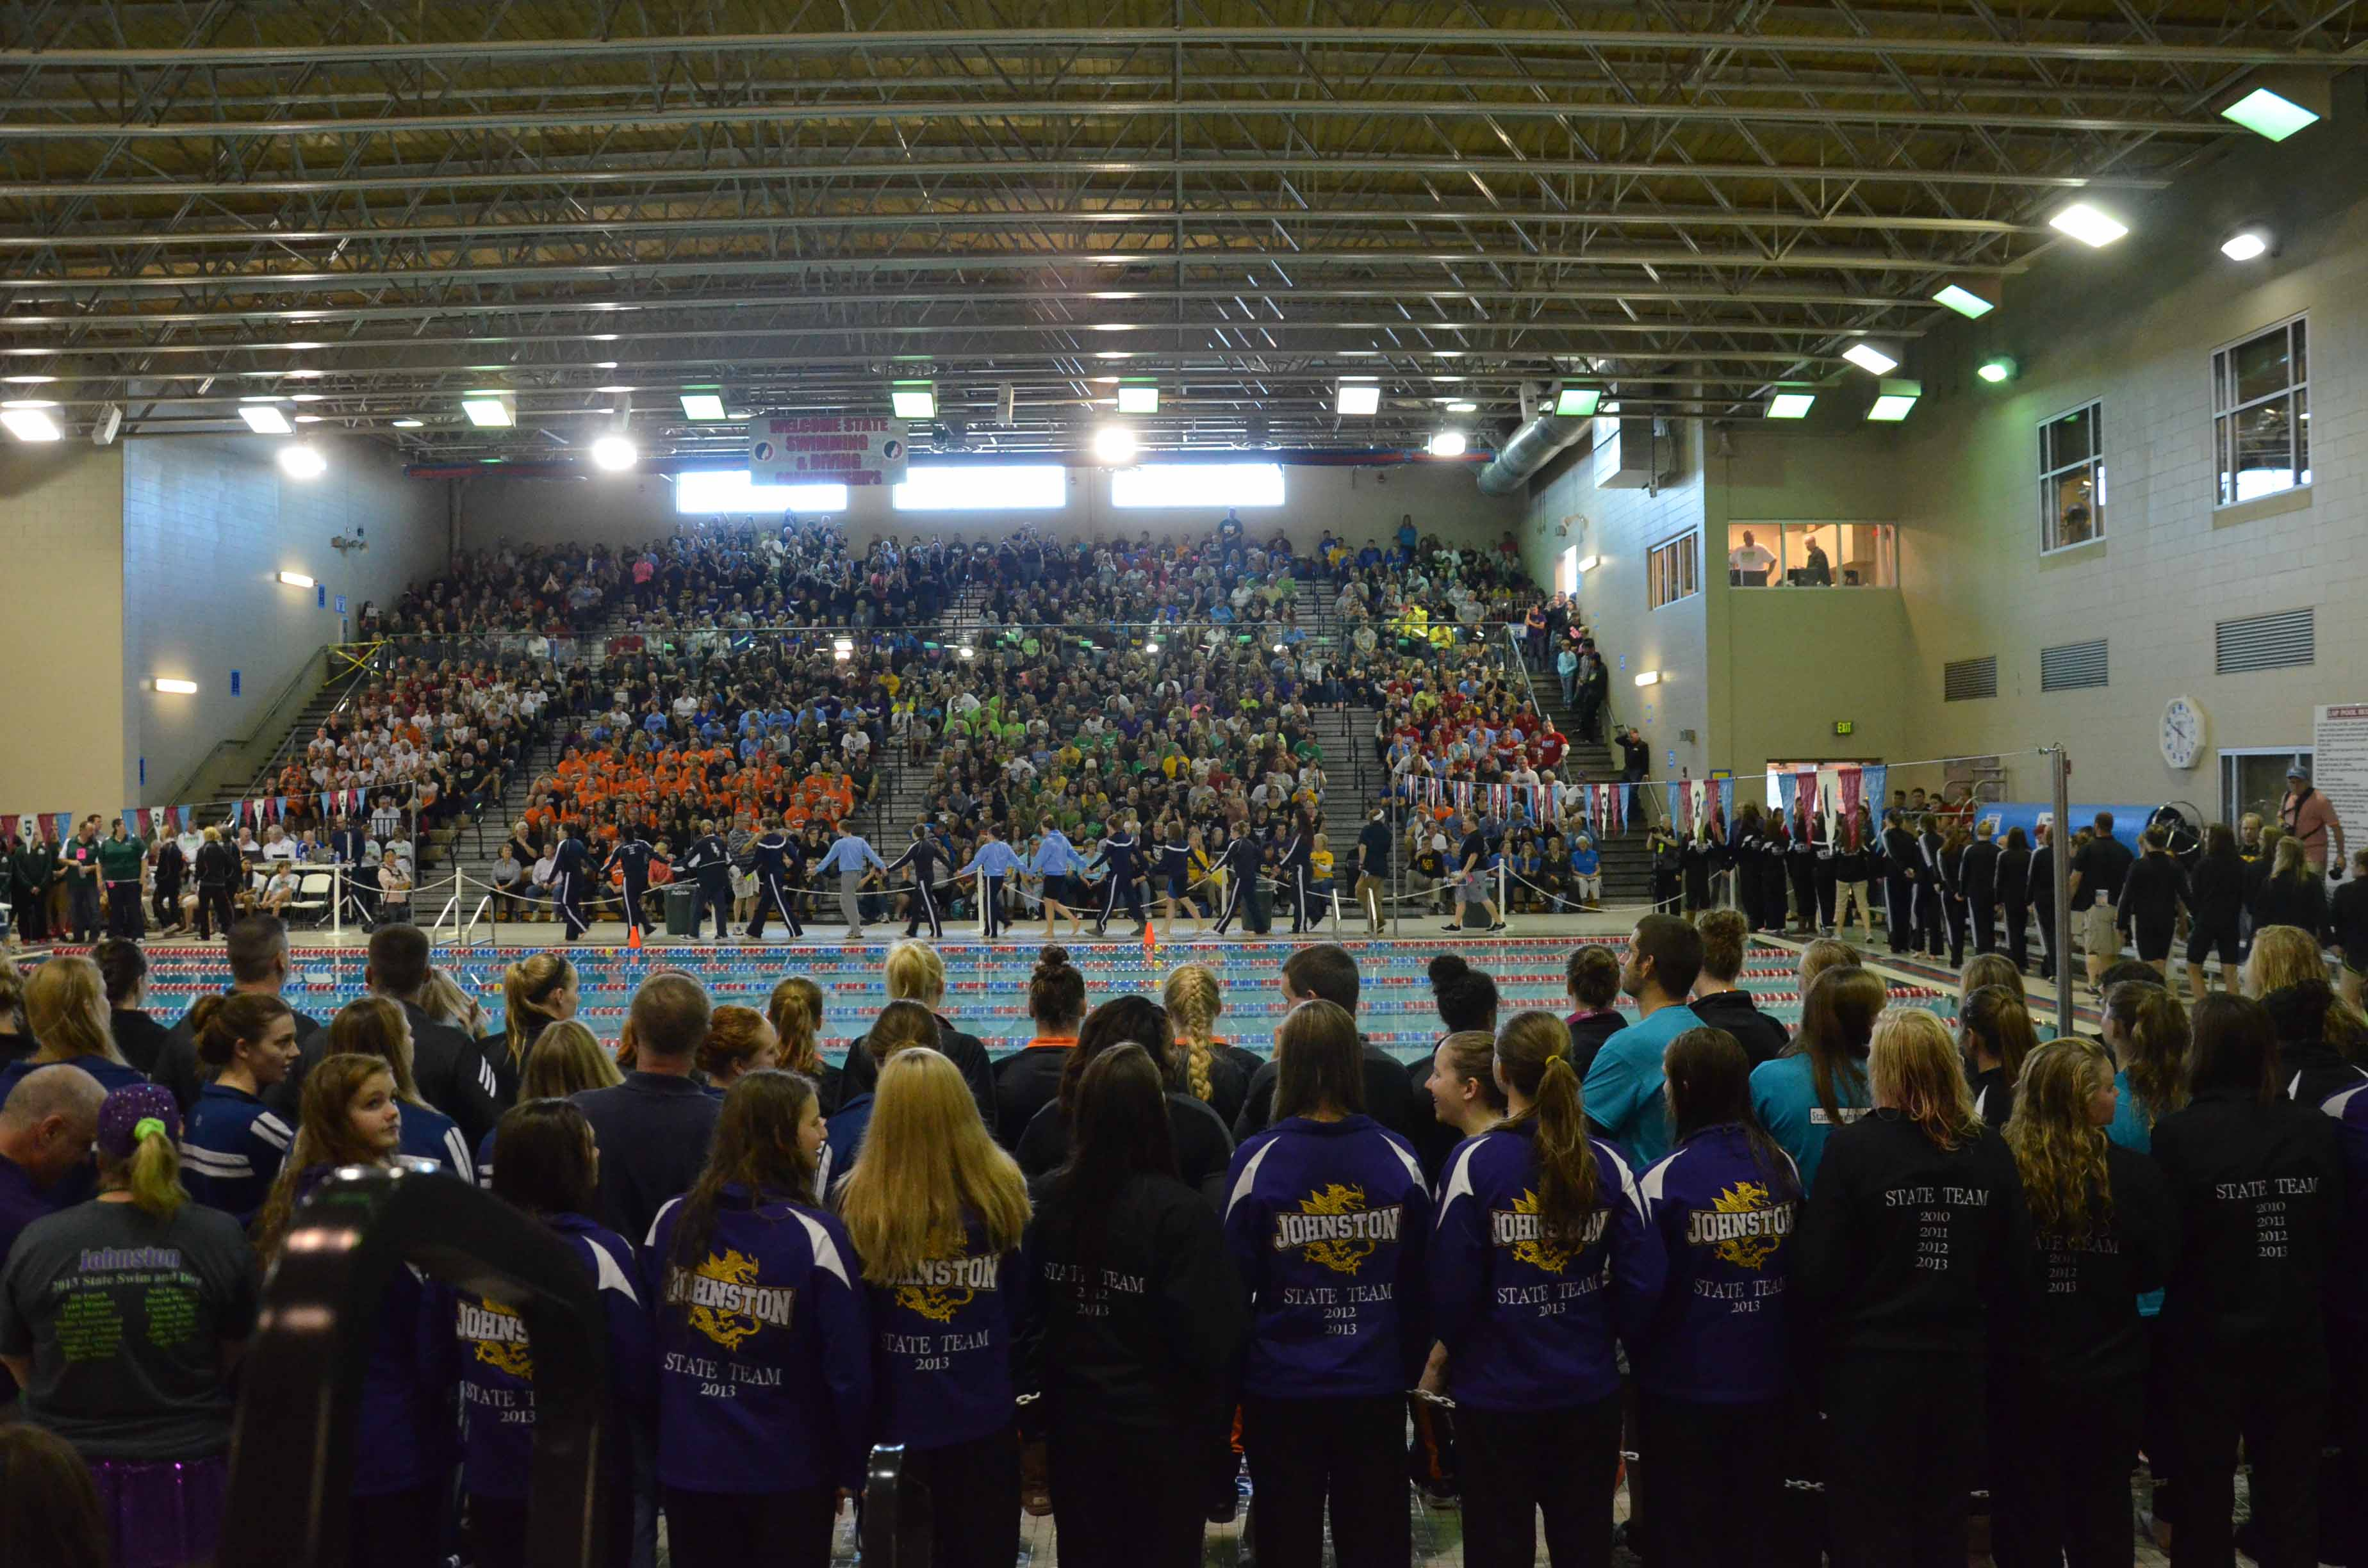 The girls' swim team lines up as they await to be announced during the parade of teams before the state swim meet. The team placed 10th overall and had 15 swimmers qualified to swim, the biggest state team head coach Shari Walling has ever had.